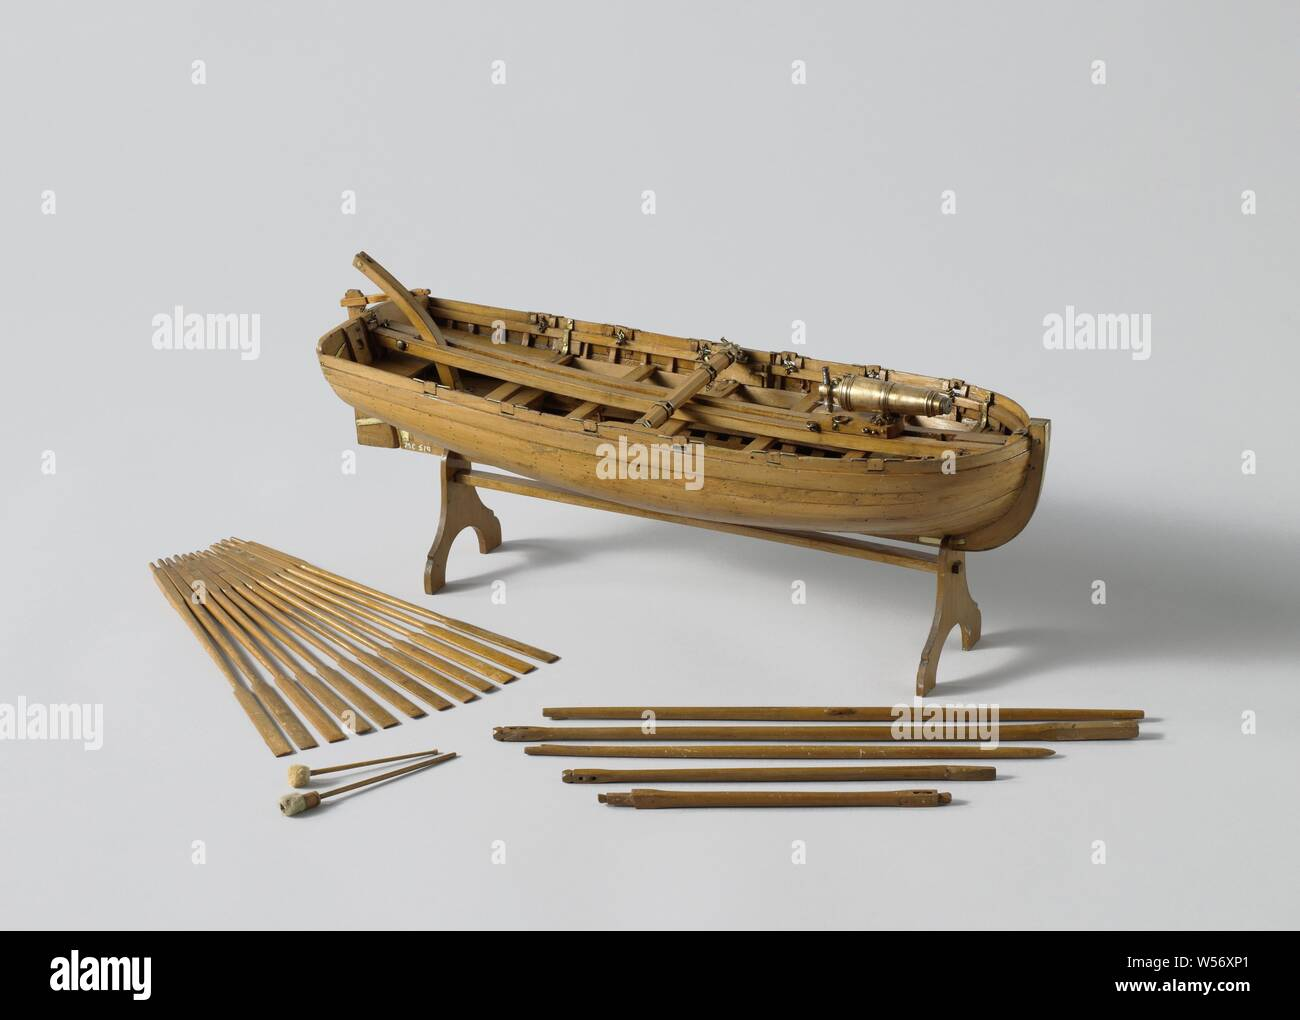 Model of an Armed Longboat, Truss model with round wood on a stand. Smooth-edged double-belted barkas, round truss with flat sheer and flat mirror, a forecourt, five diets and rails and an open cabin with side dents. The prow is coppered and has a disk. Three-part frames. Simple rudder with a tiller that fits over the rudder king. The rig consists of a large mast with ra for a bucket sail and a grape mast with a parrot pole and whip. The barkas is armed with a carronade on a loose carriage, which extends from the front to the stern, and is provided with loading equipment. On separate parts Stock Photo